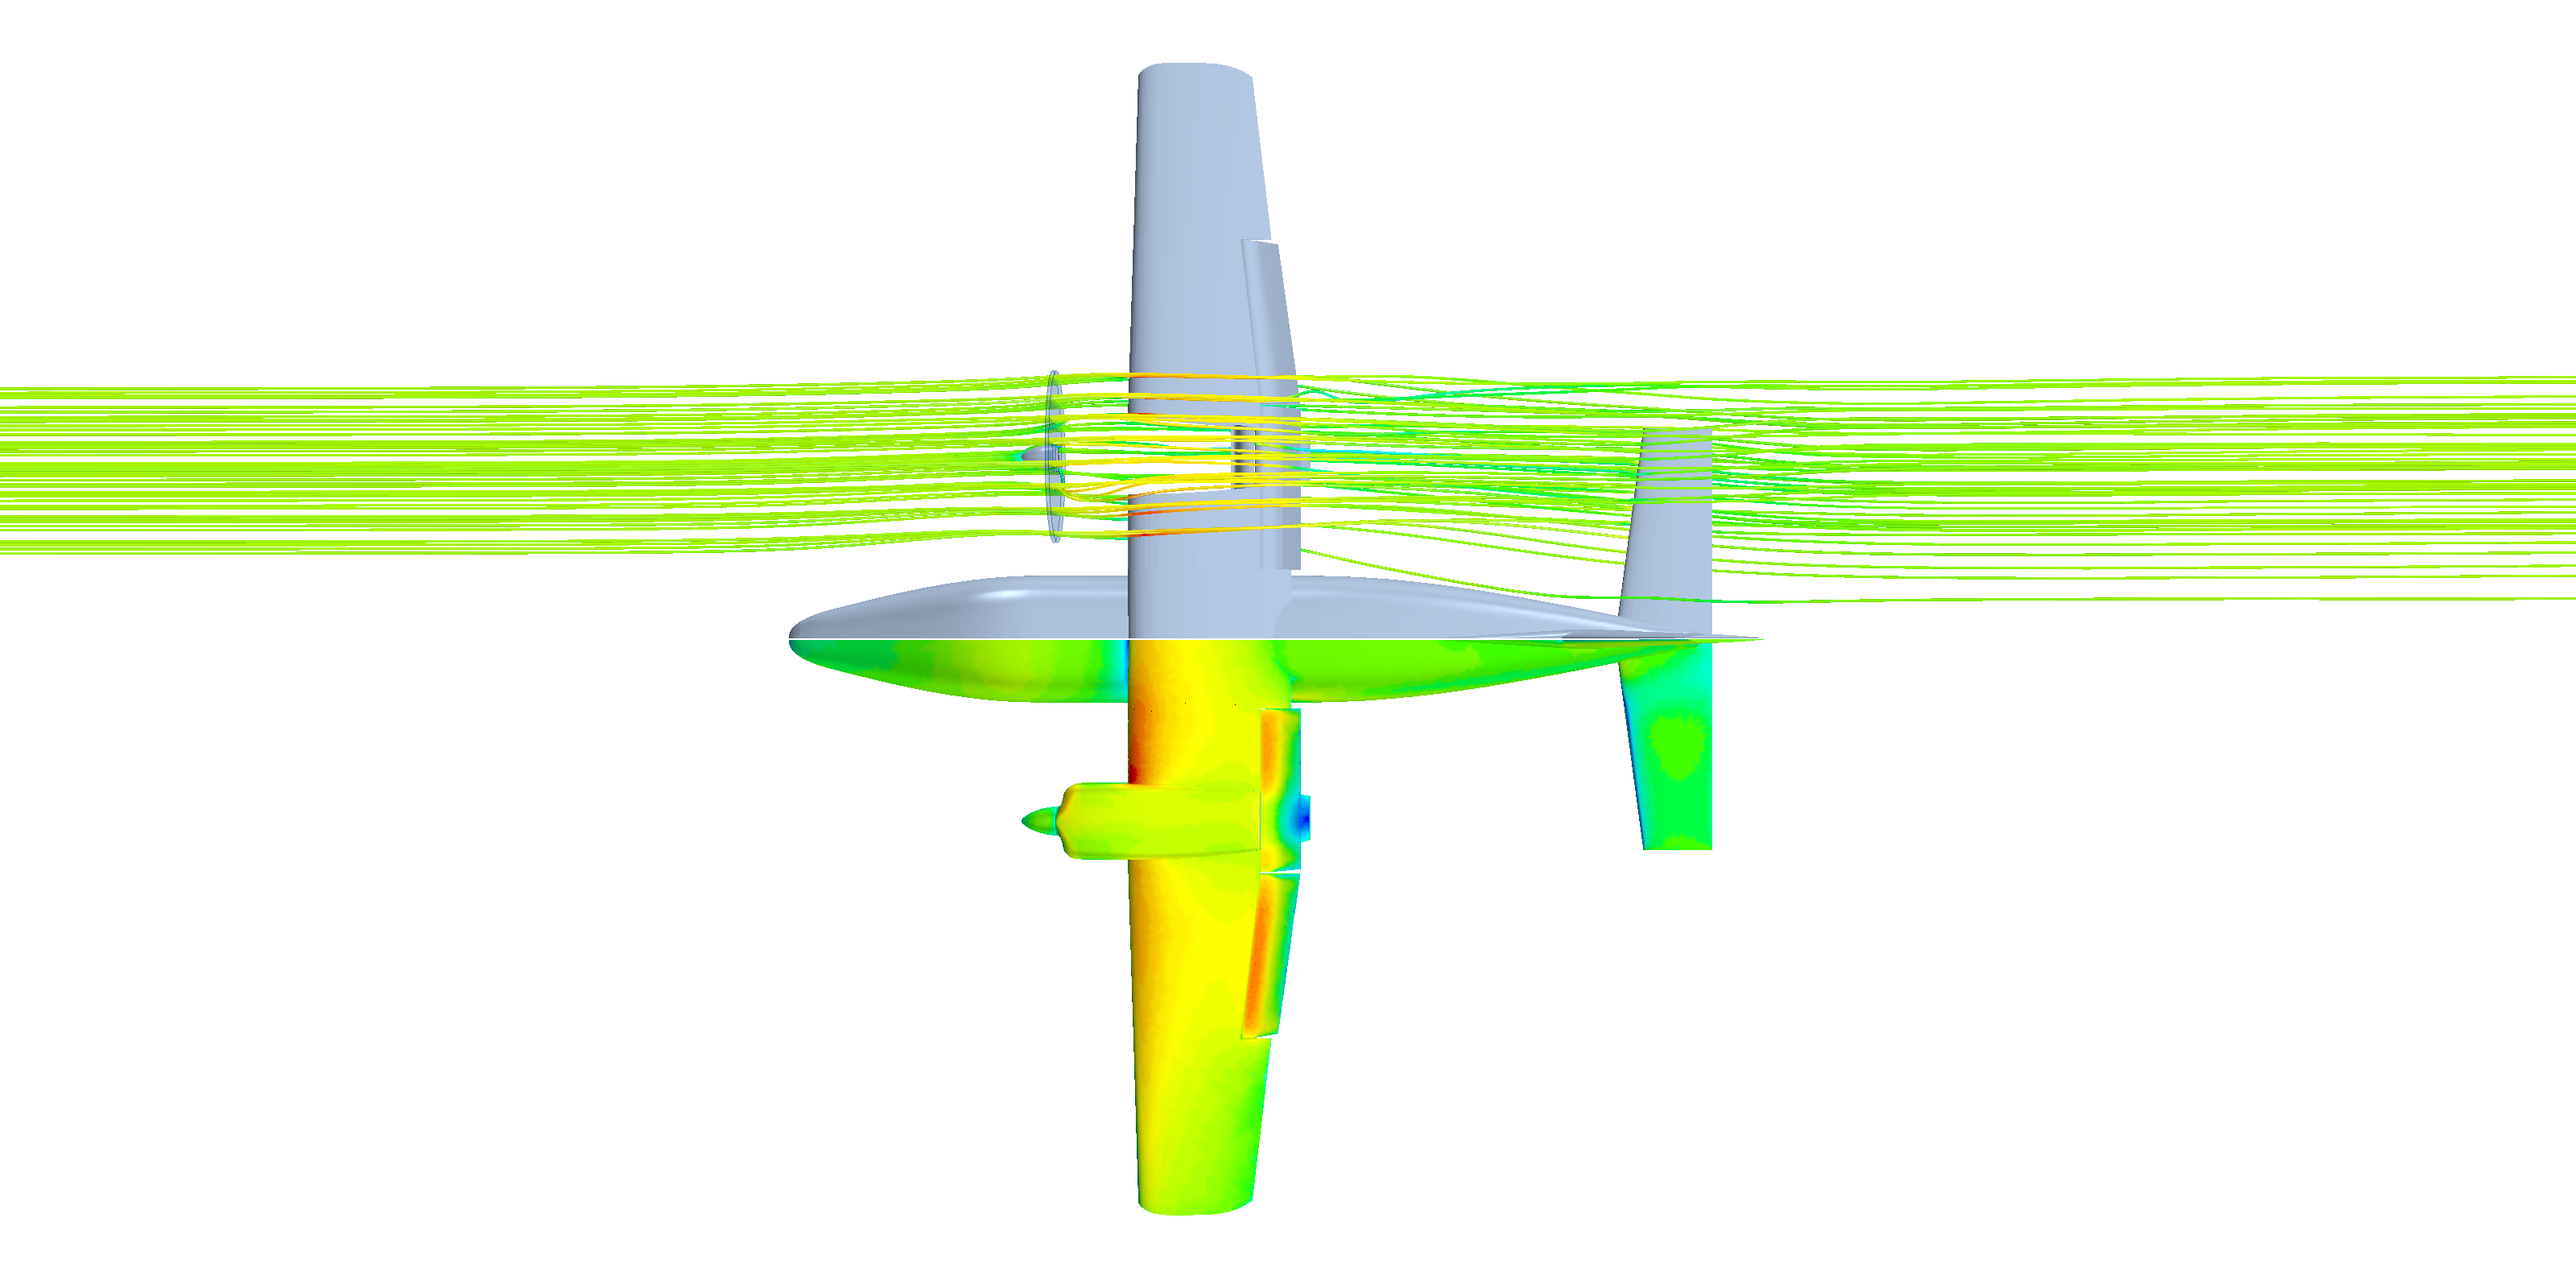 Winglet Geometry Impact on DLR-F4 Aerodynamics and an Analysis of a Hyperbolic Winglet Concept